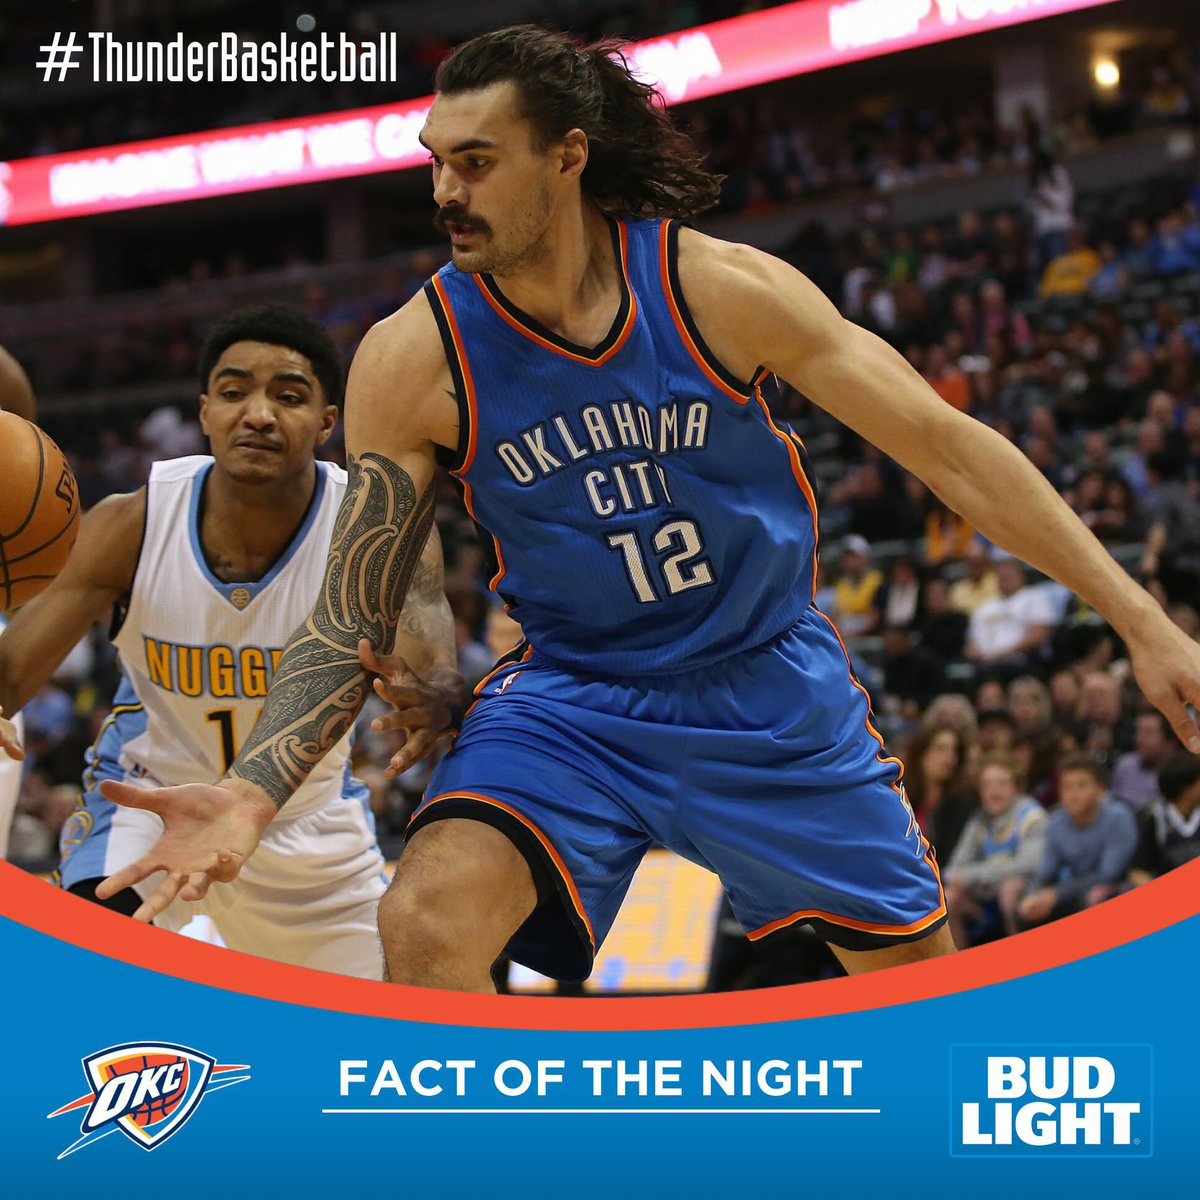 .@BudLight Fact. Going Into Final Rs Game, Thunder/NBA